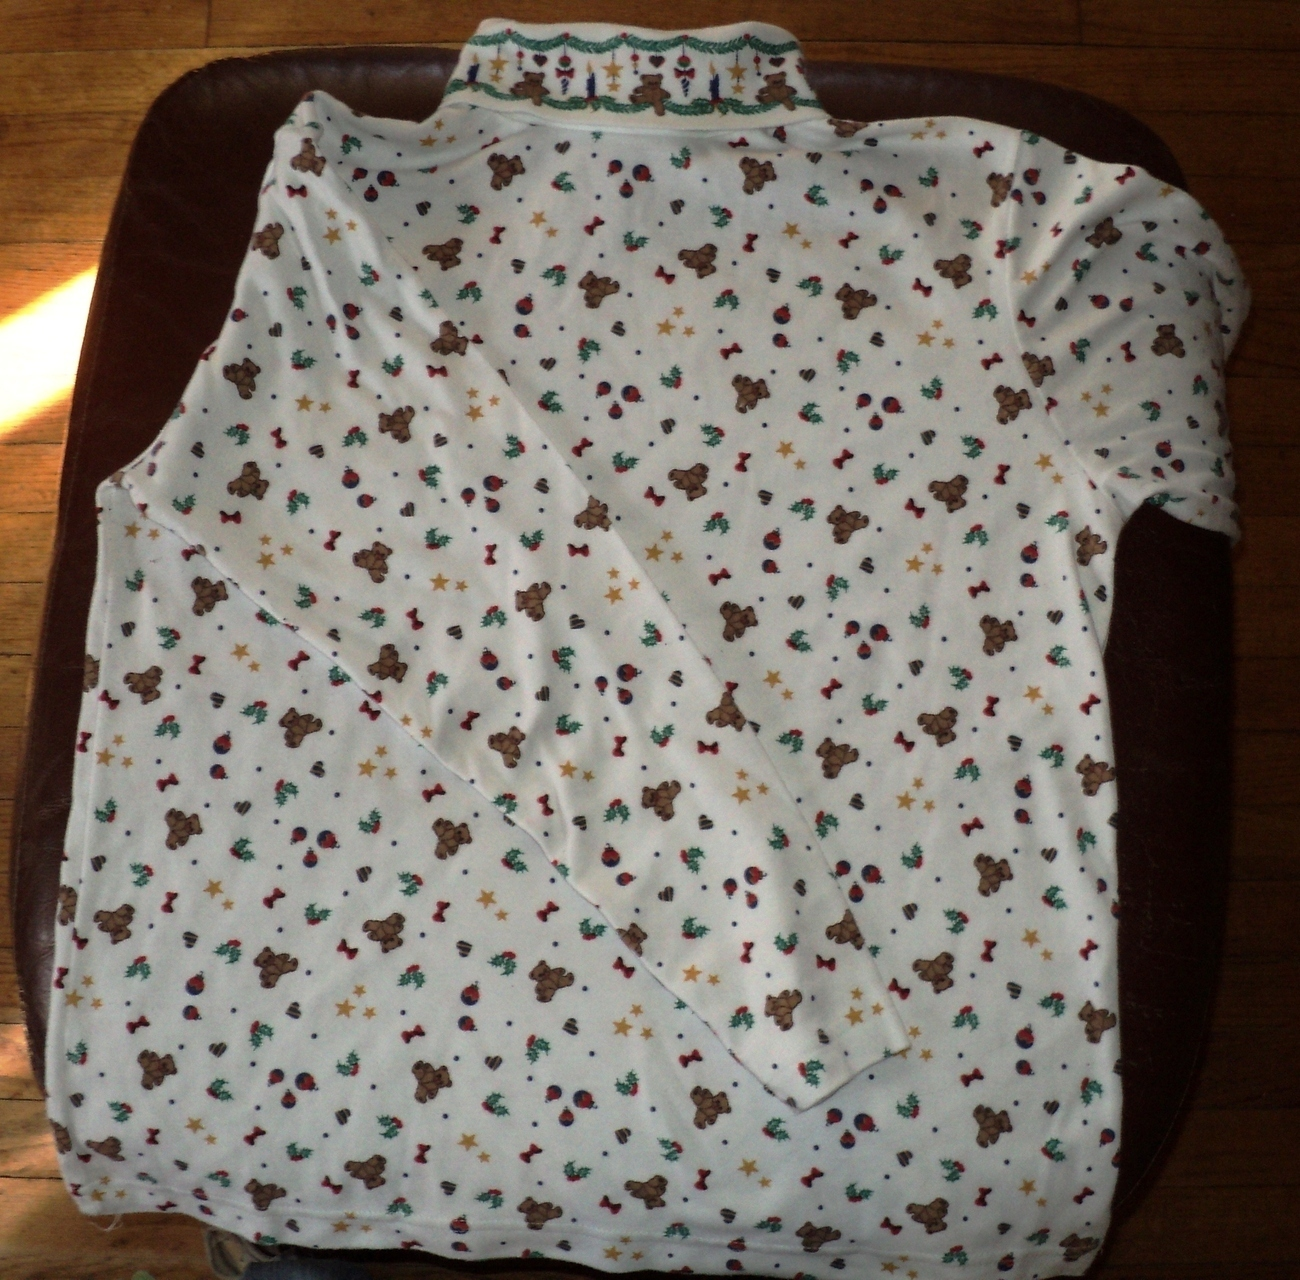 Ugly Christmas Shirt for Sweater Bears Ornament Star Size Medium 43 Chest Unisex image 4